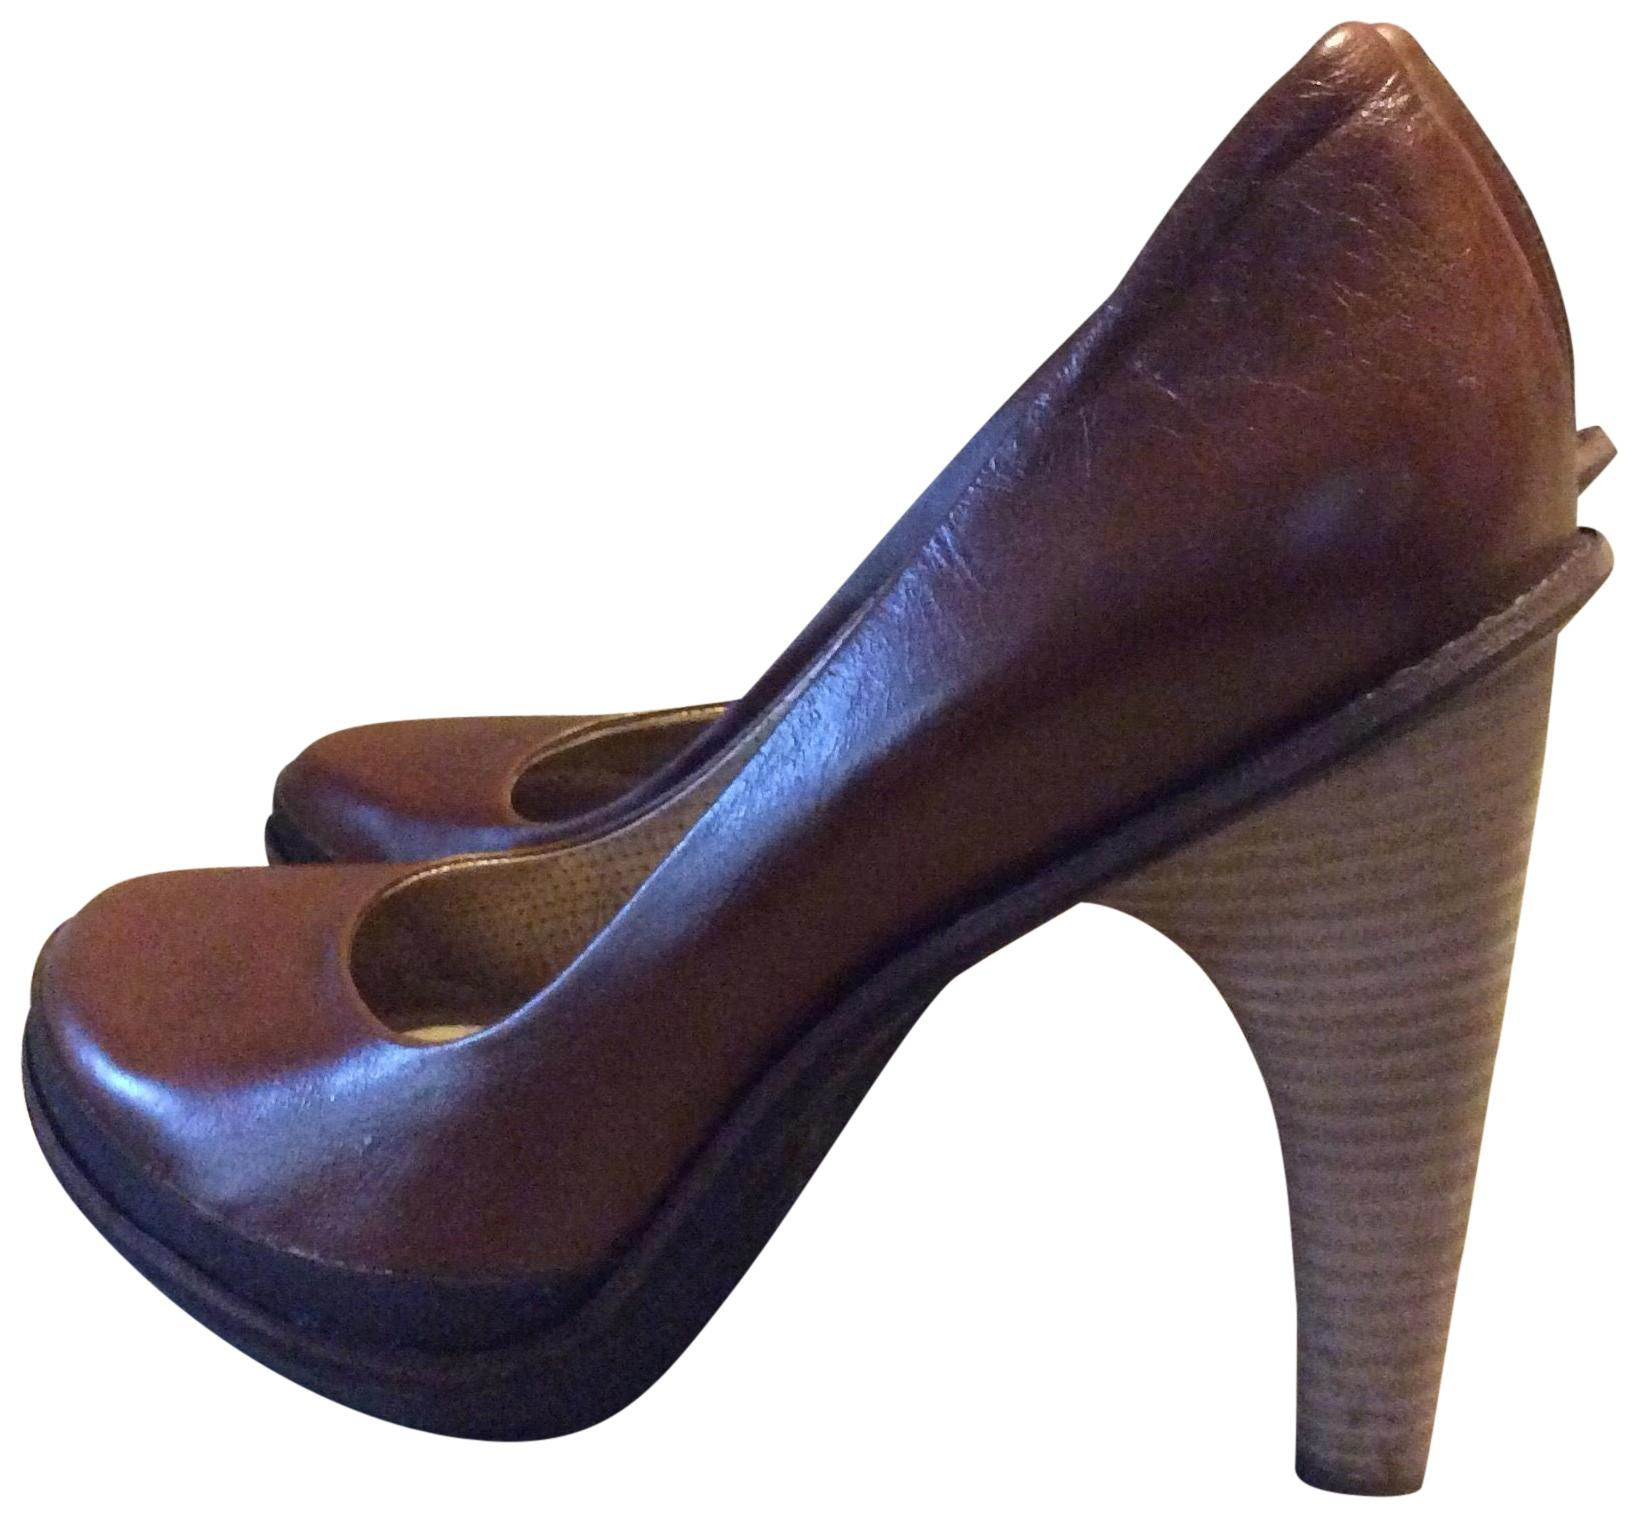 73d4377d865 Tsubo Brown Pumps Size US 9 Regular (M